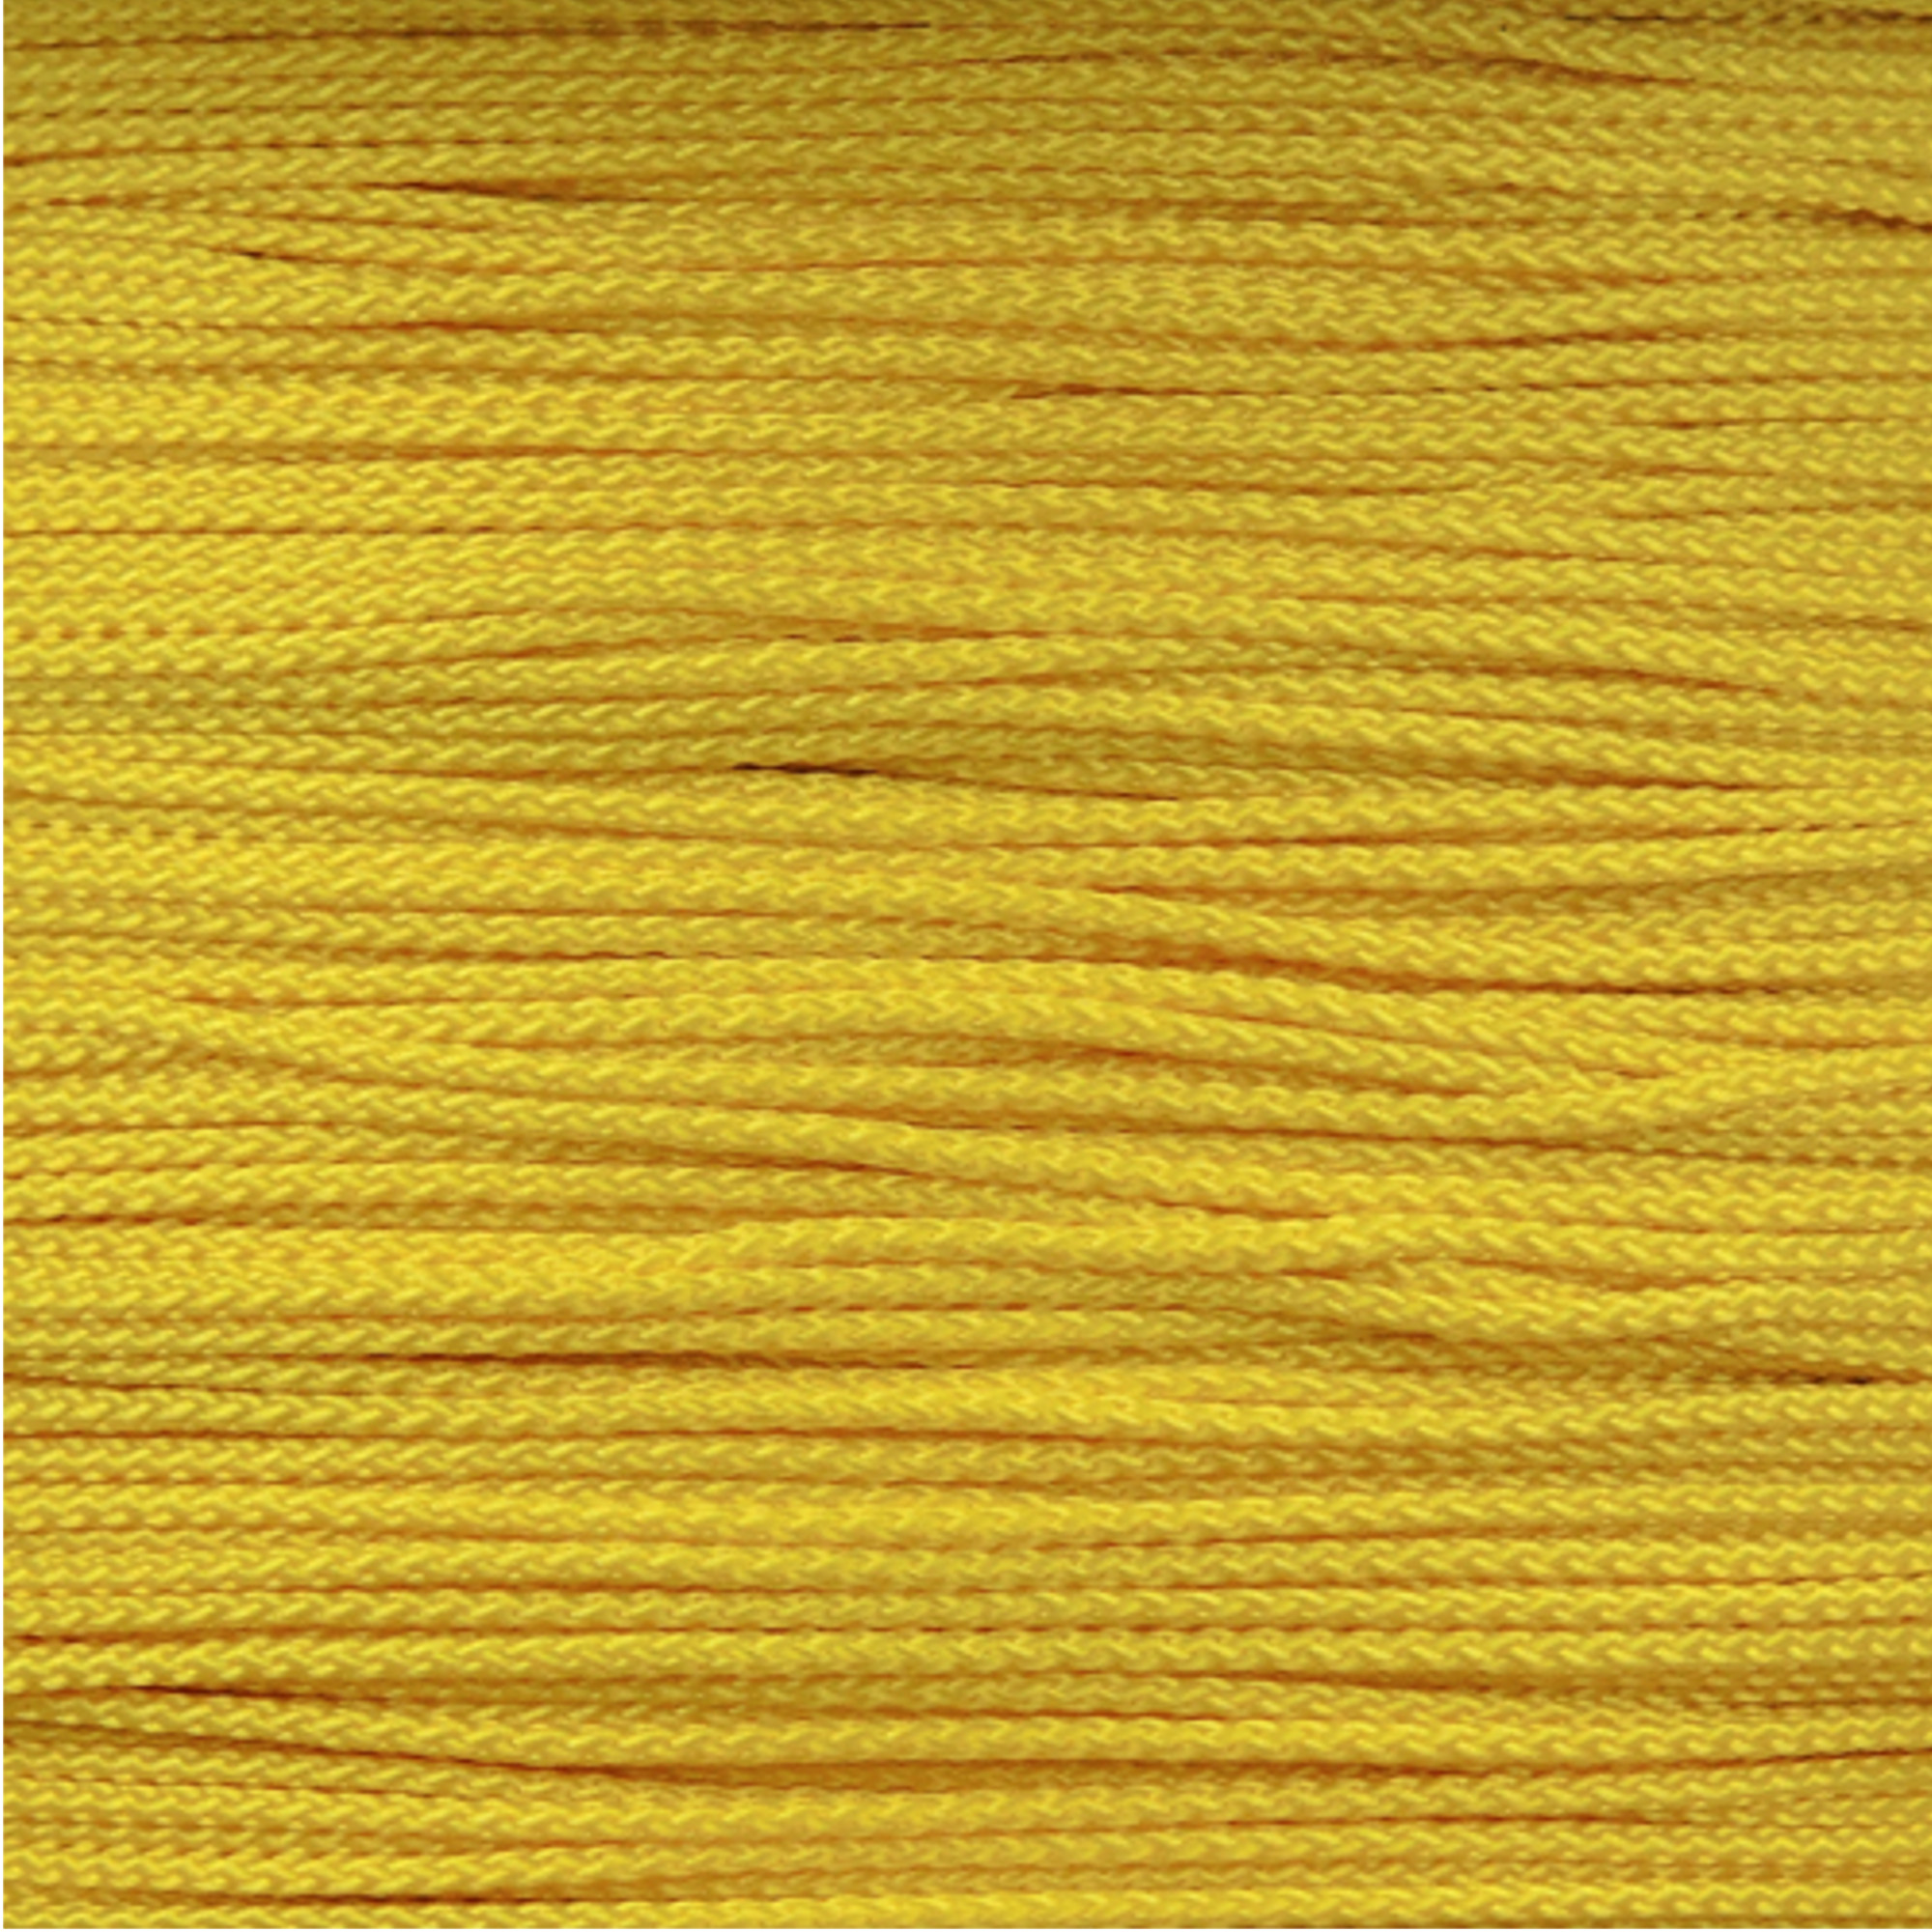 Micro 90 Cord – M90 – Nylon Paracord in Solid Colors – Tensile Strength 90 LBs – Choose from 10, 25, 50, 100, & 1000 Foot Sizes